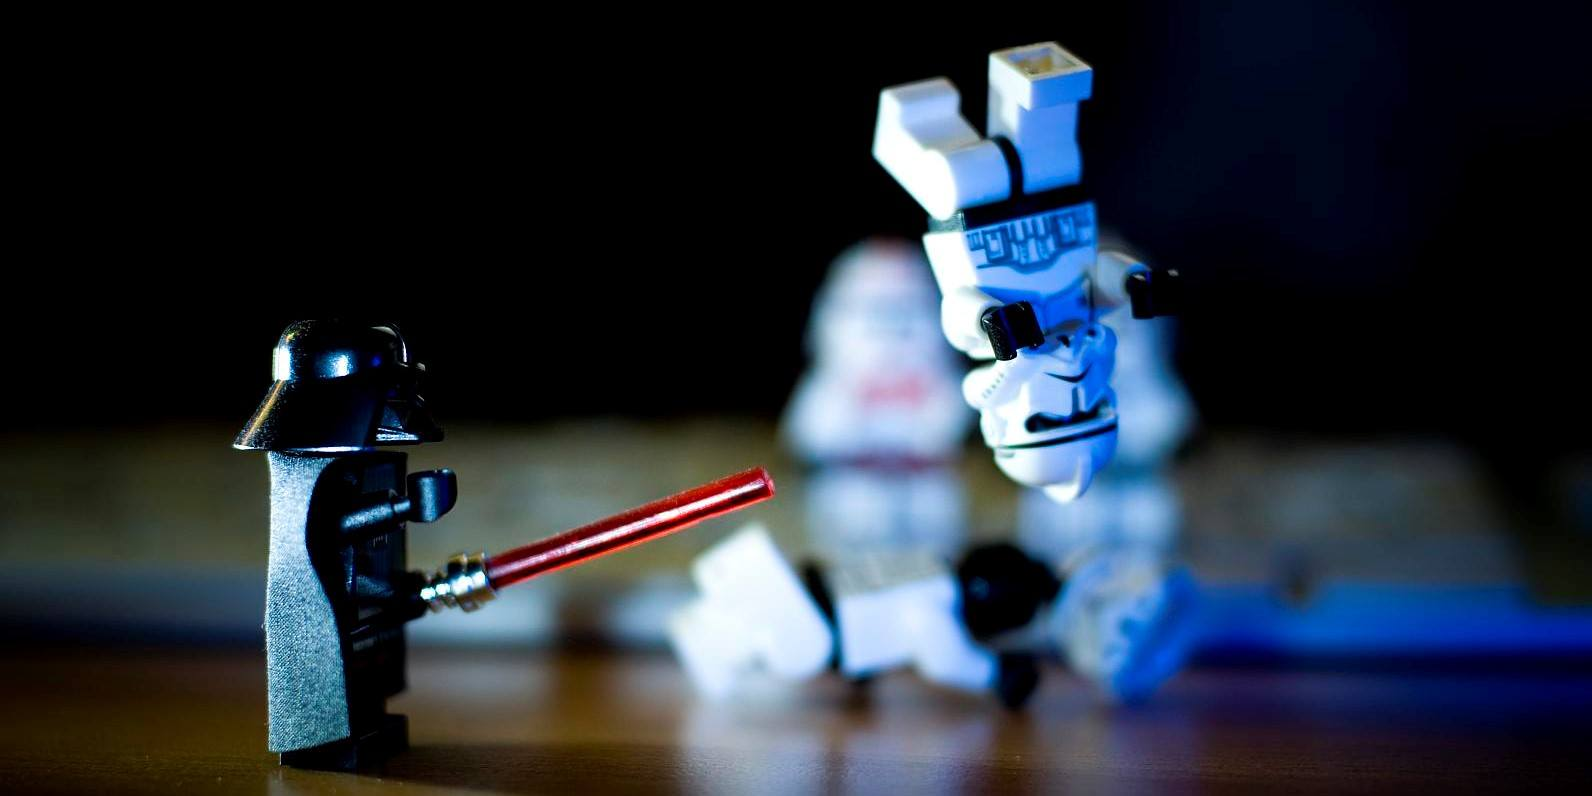 A cool shot of Star Wars LEGOs